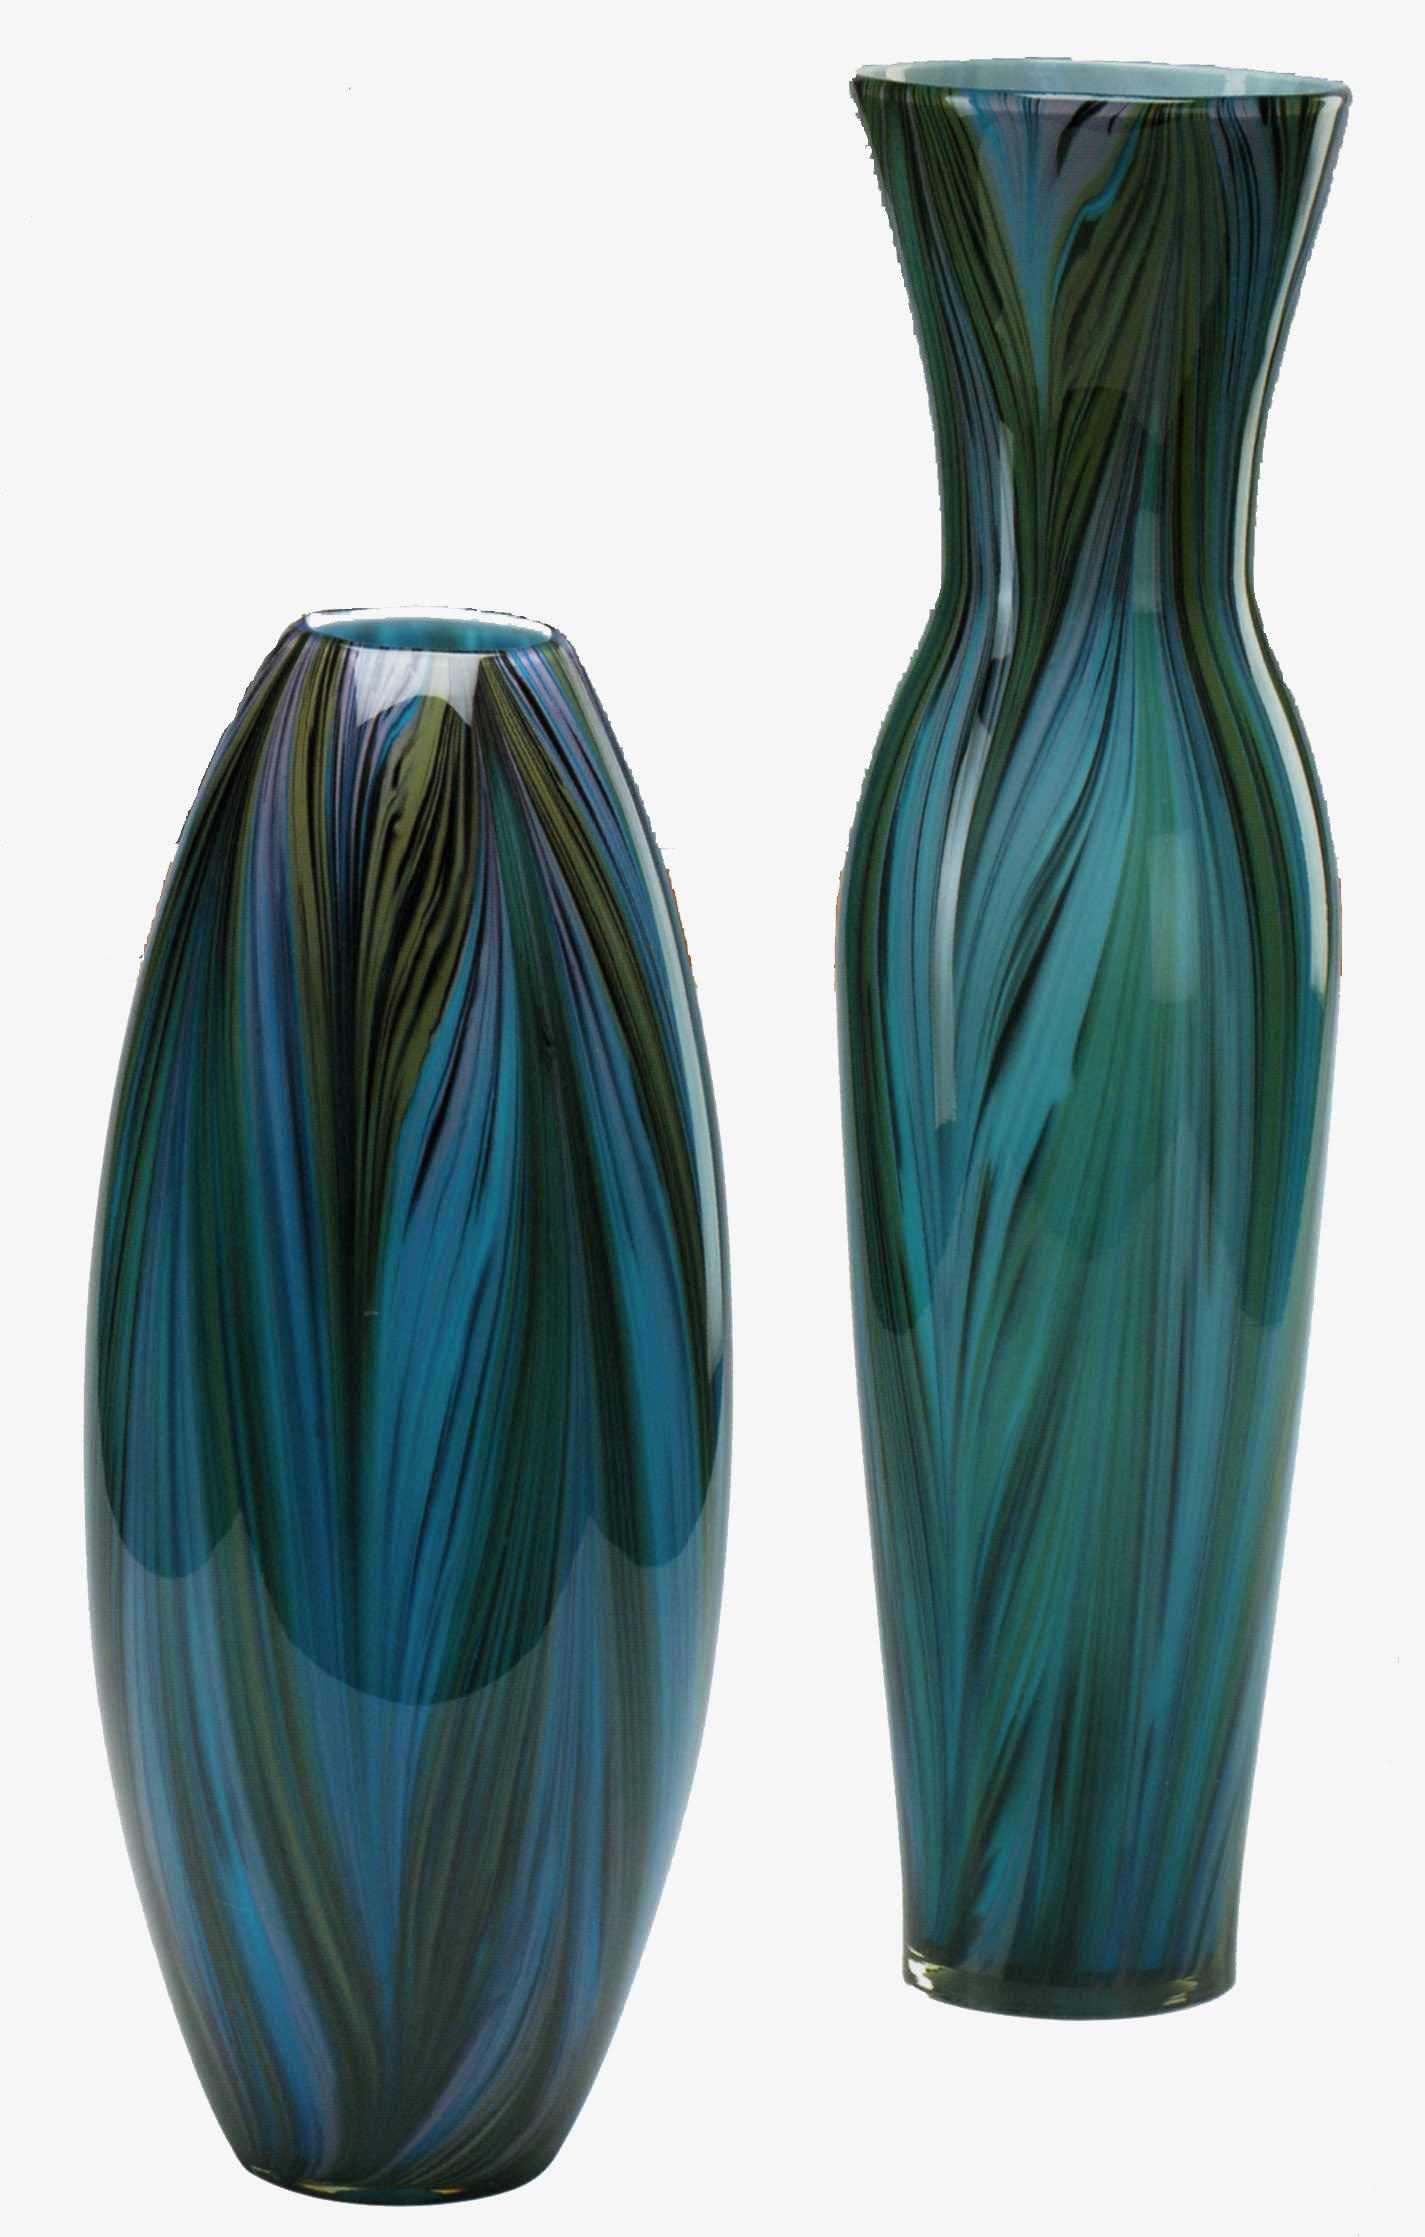 Peacock Feather Vase Accessories